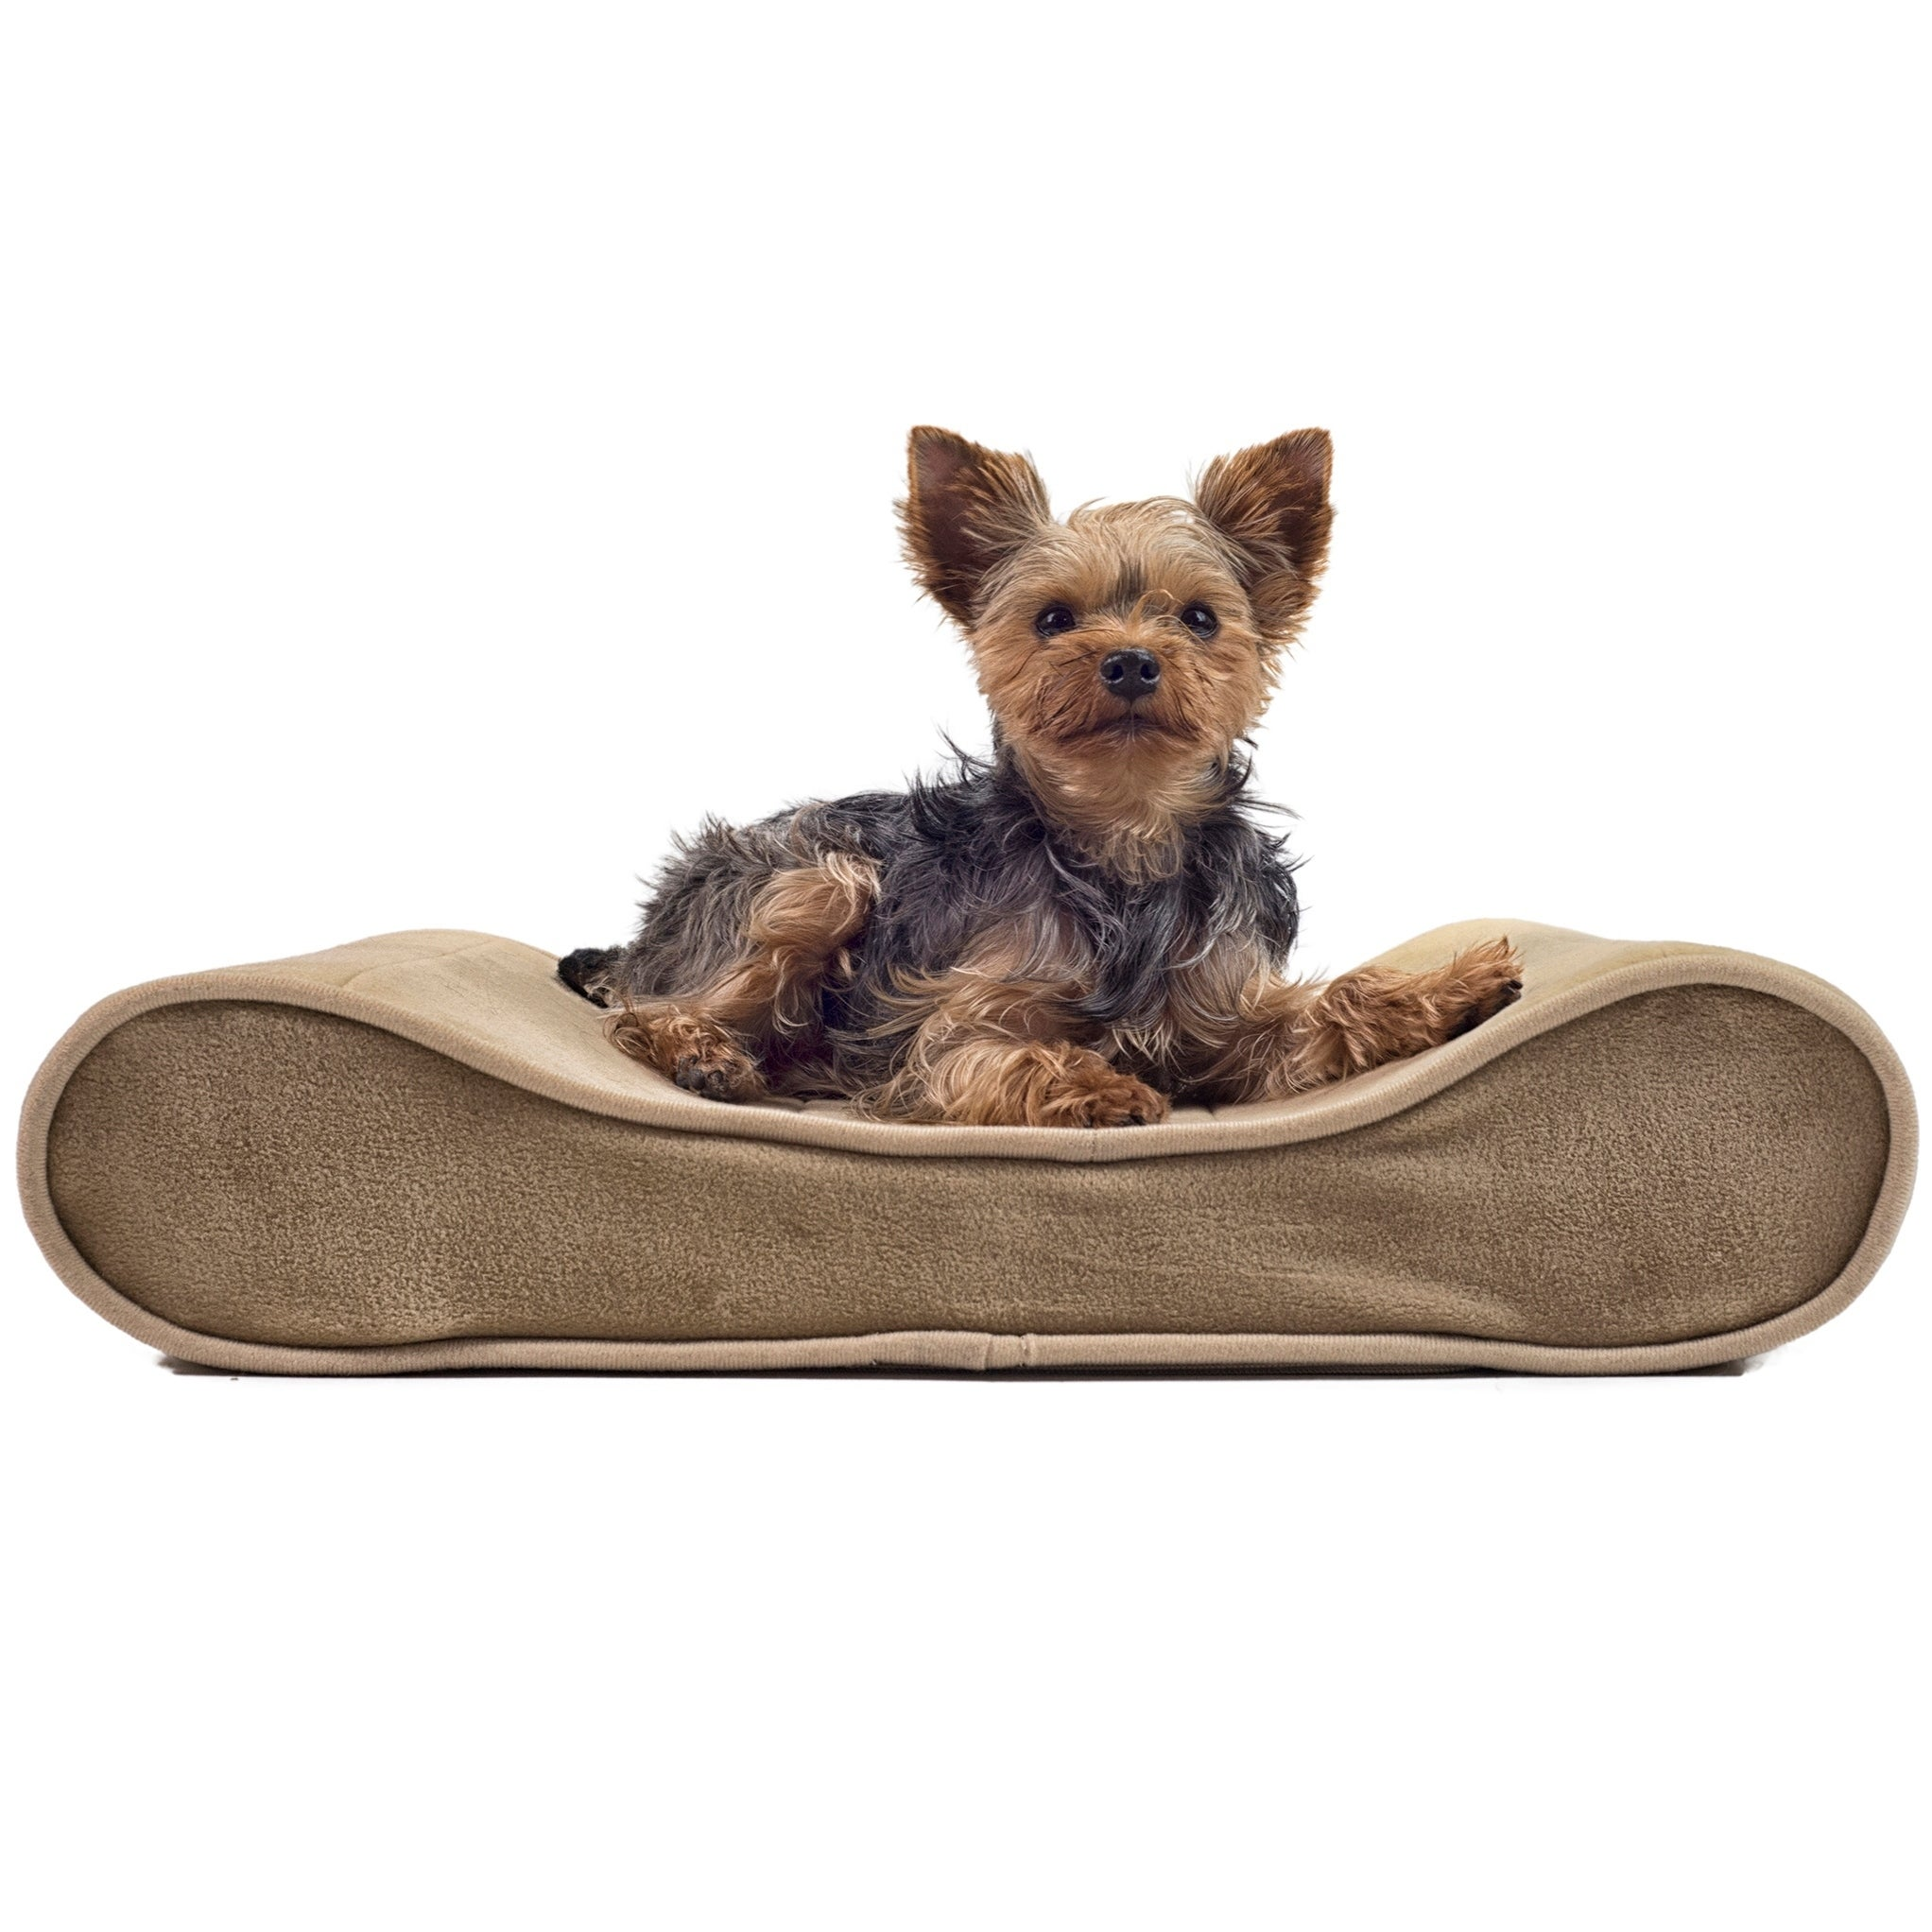 Home & Garden Houses, Kennels & Pens Symbol Of The Brand Cloth Cot Bed Cover Hanging Bed Pet Supplies Comfortable Furniture Warm Pet Blanket Pet Bed Soft Cat 2 Colors Cat Hammock Bed Save 50-70%